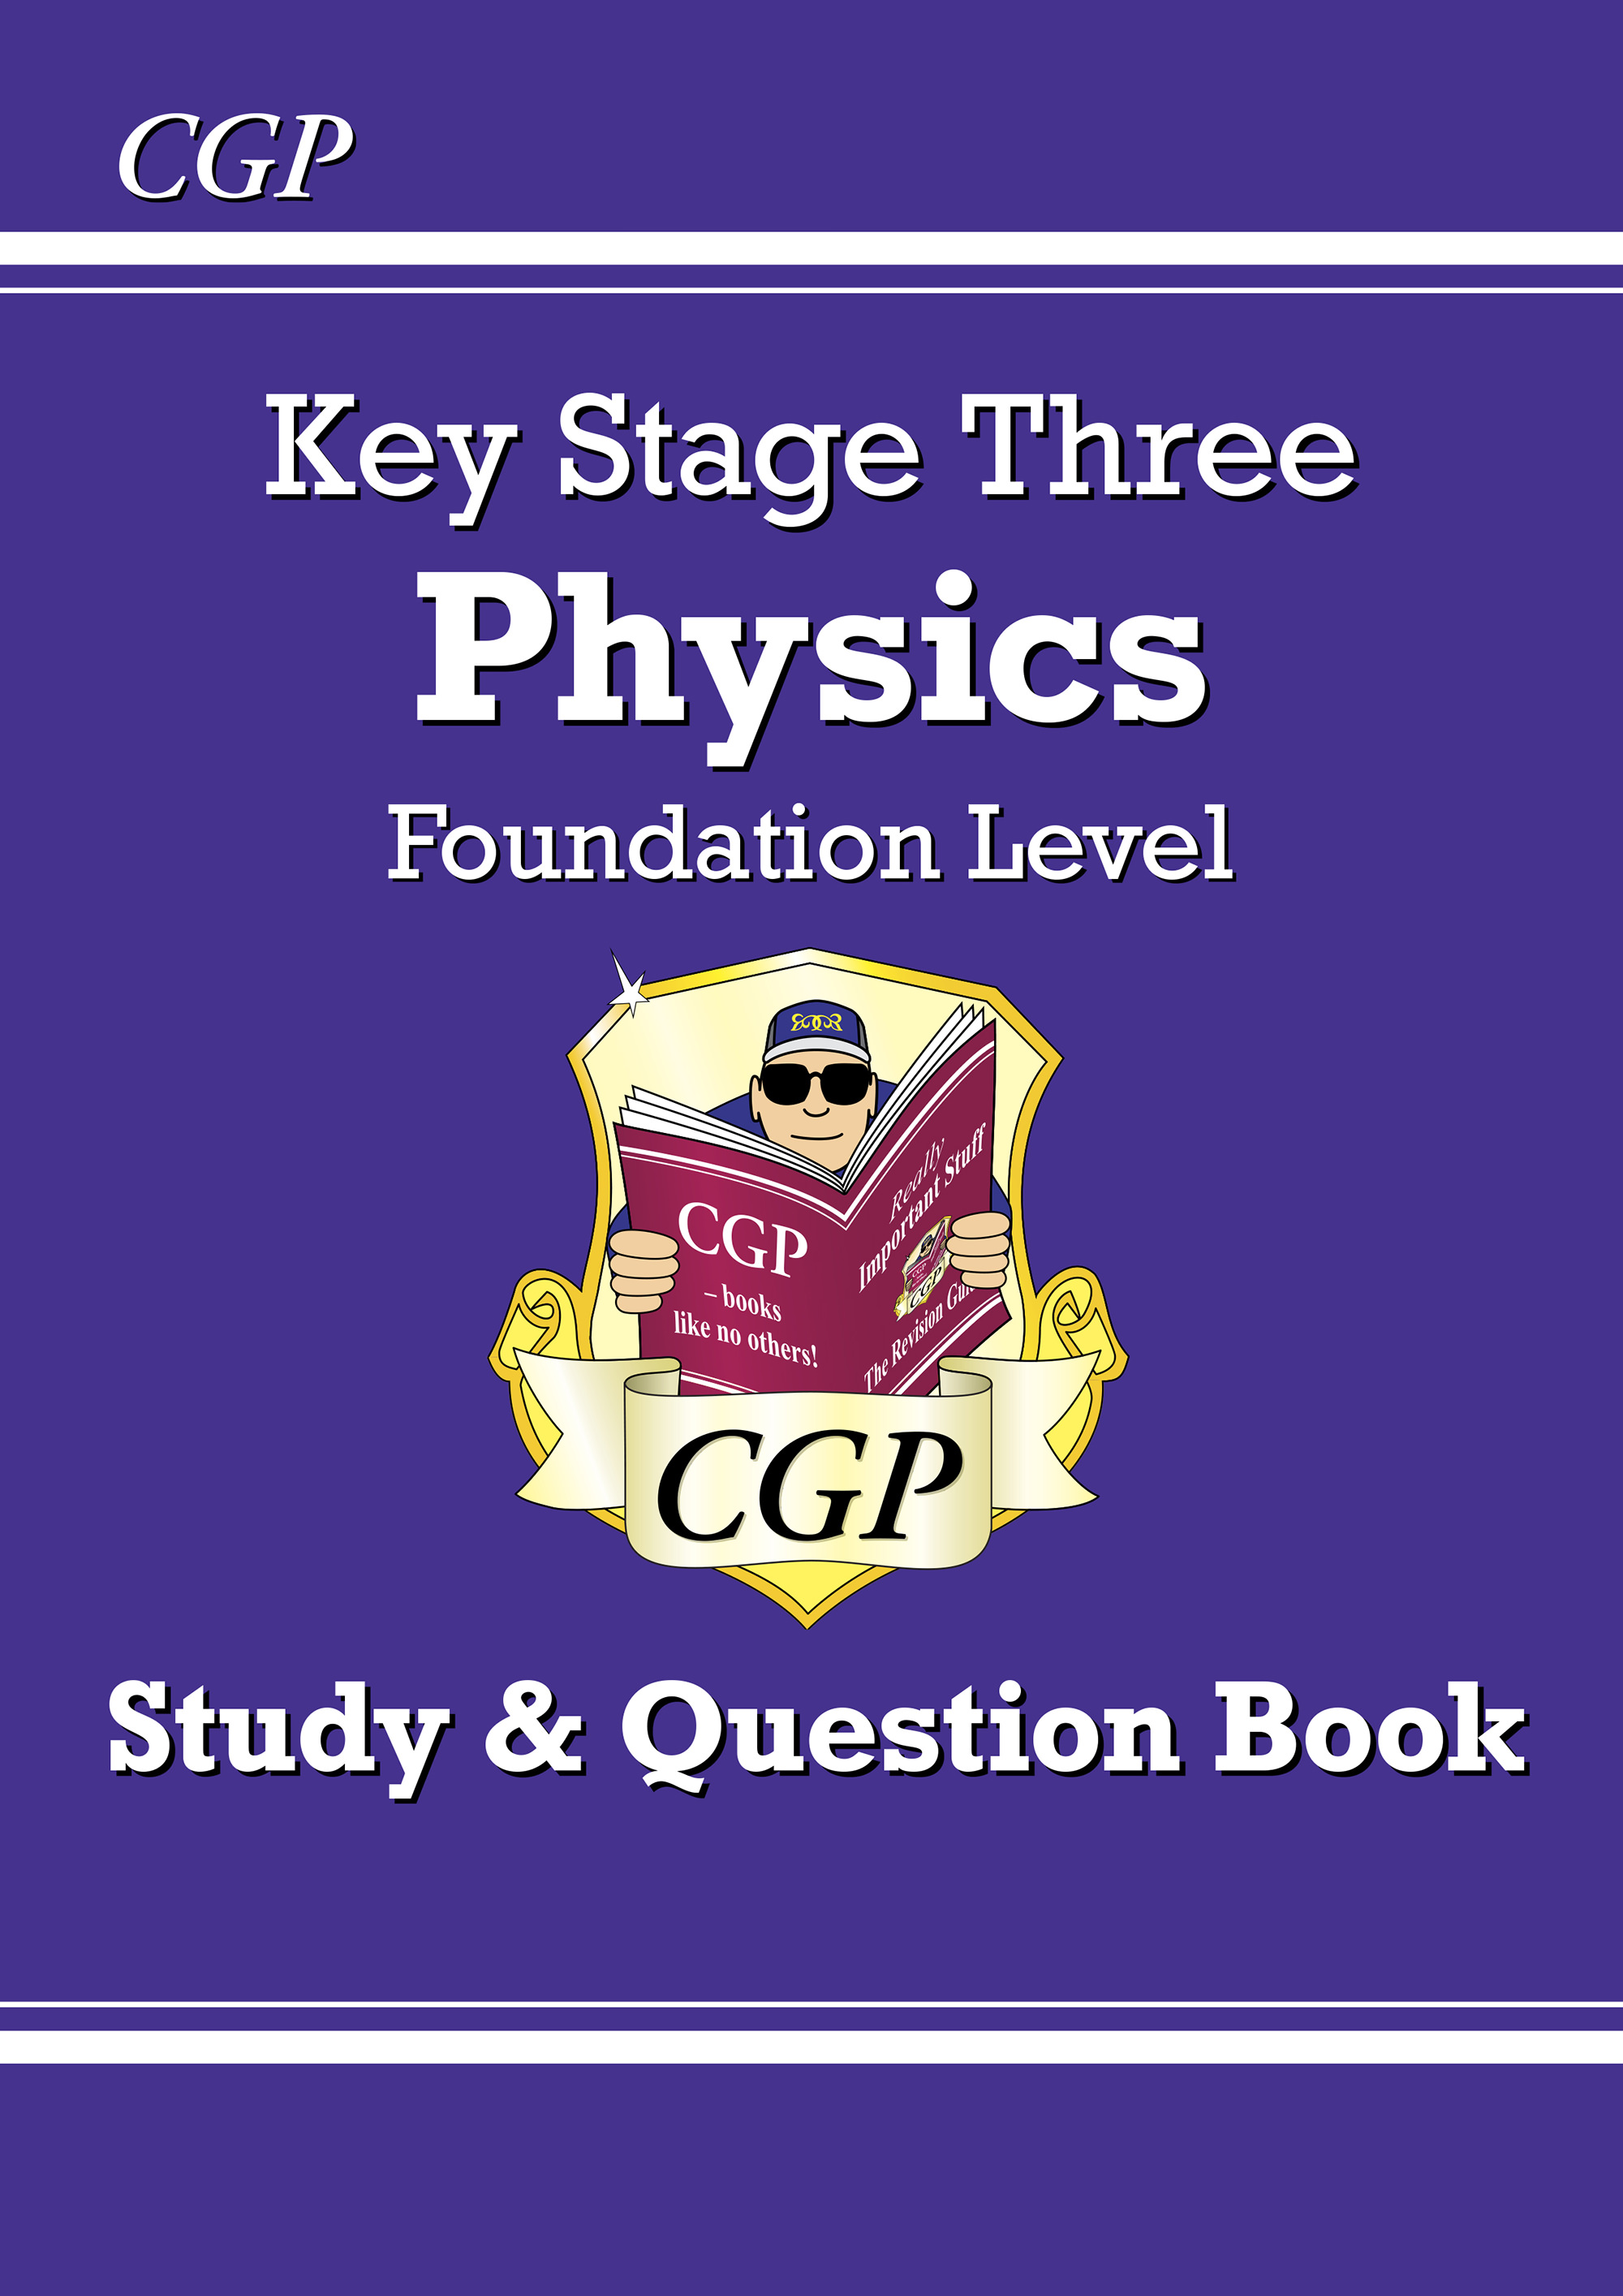 PFQ32D - KS3 Physics Study & Question Book - Foundation Online Edition